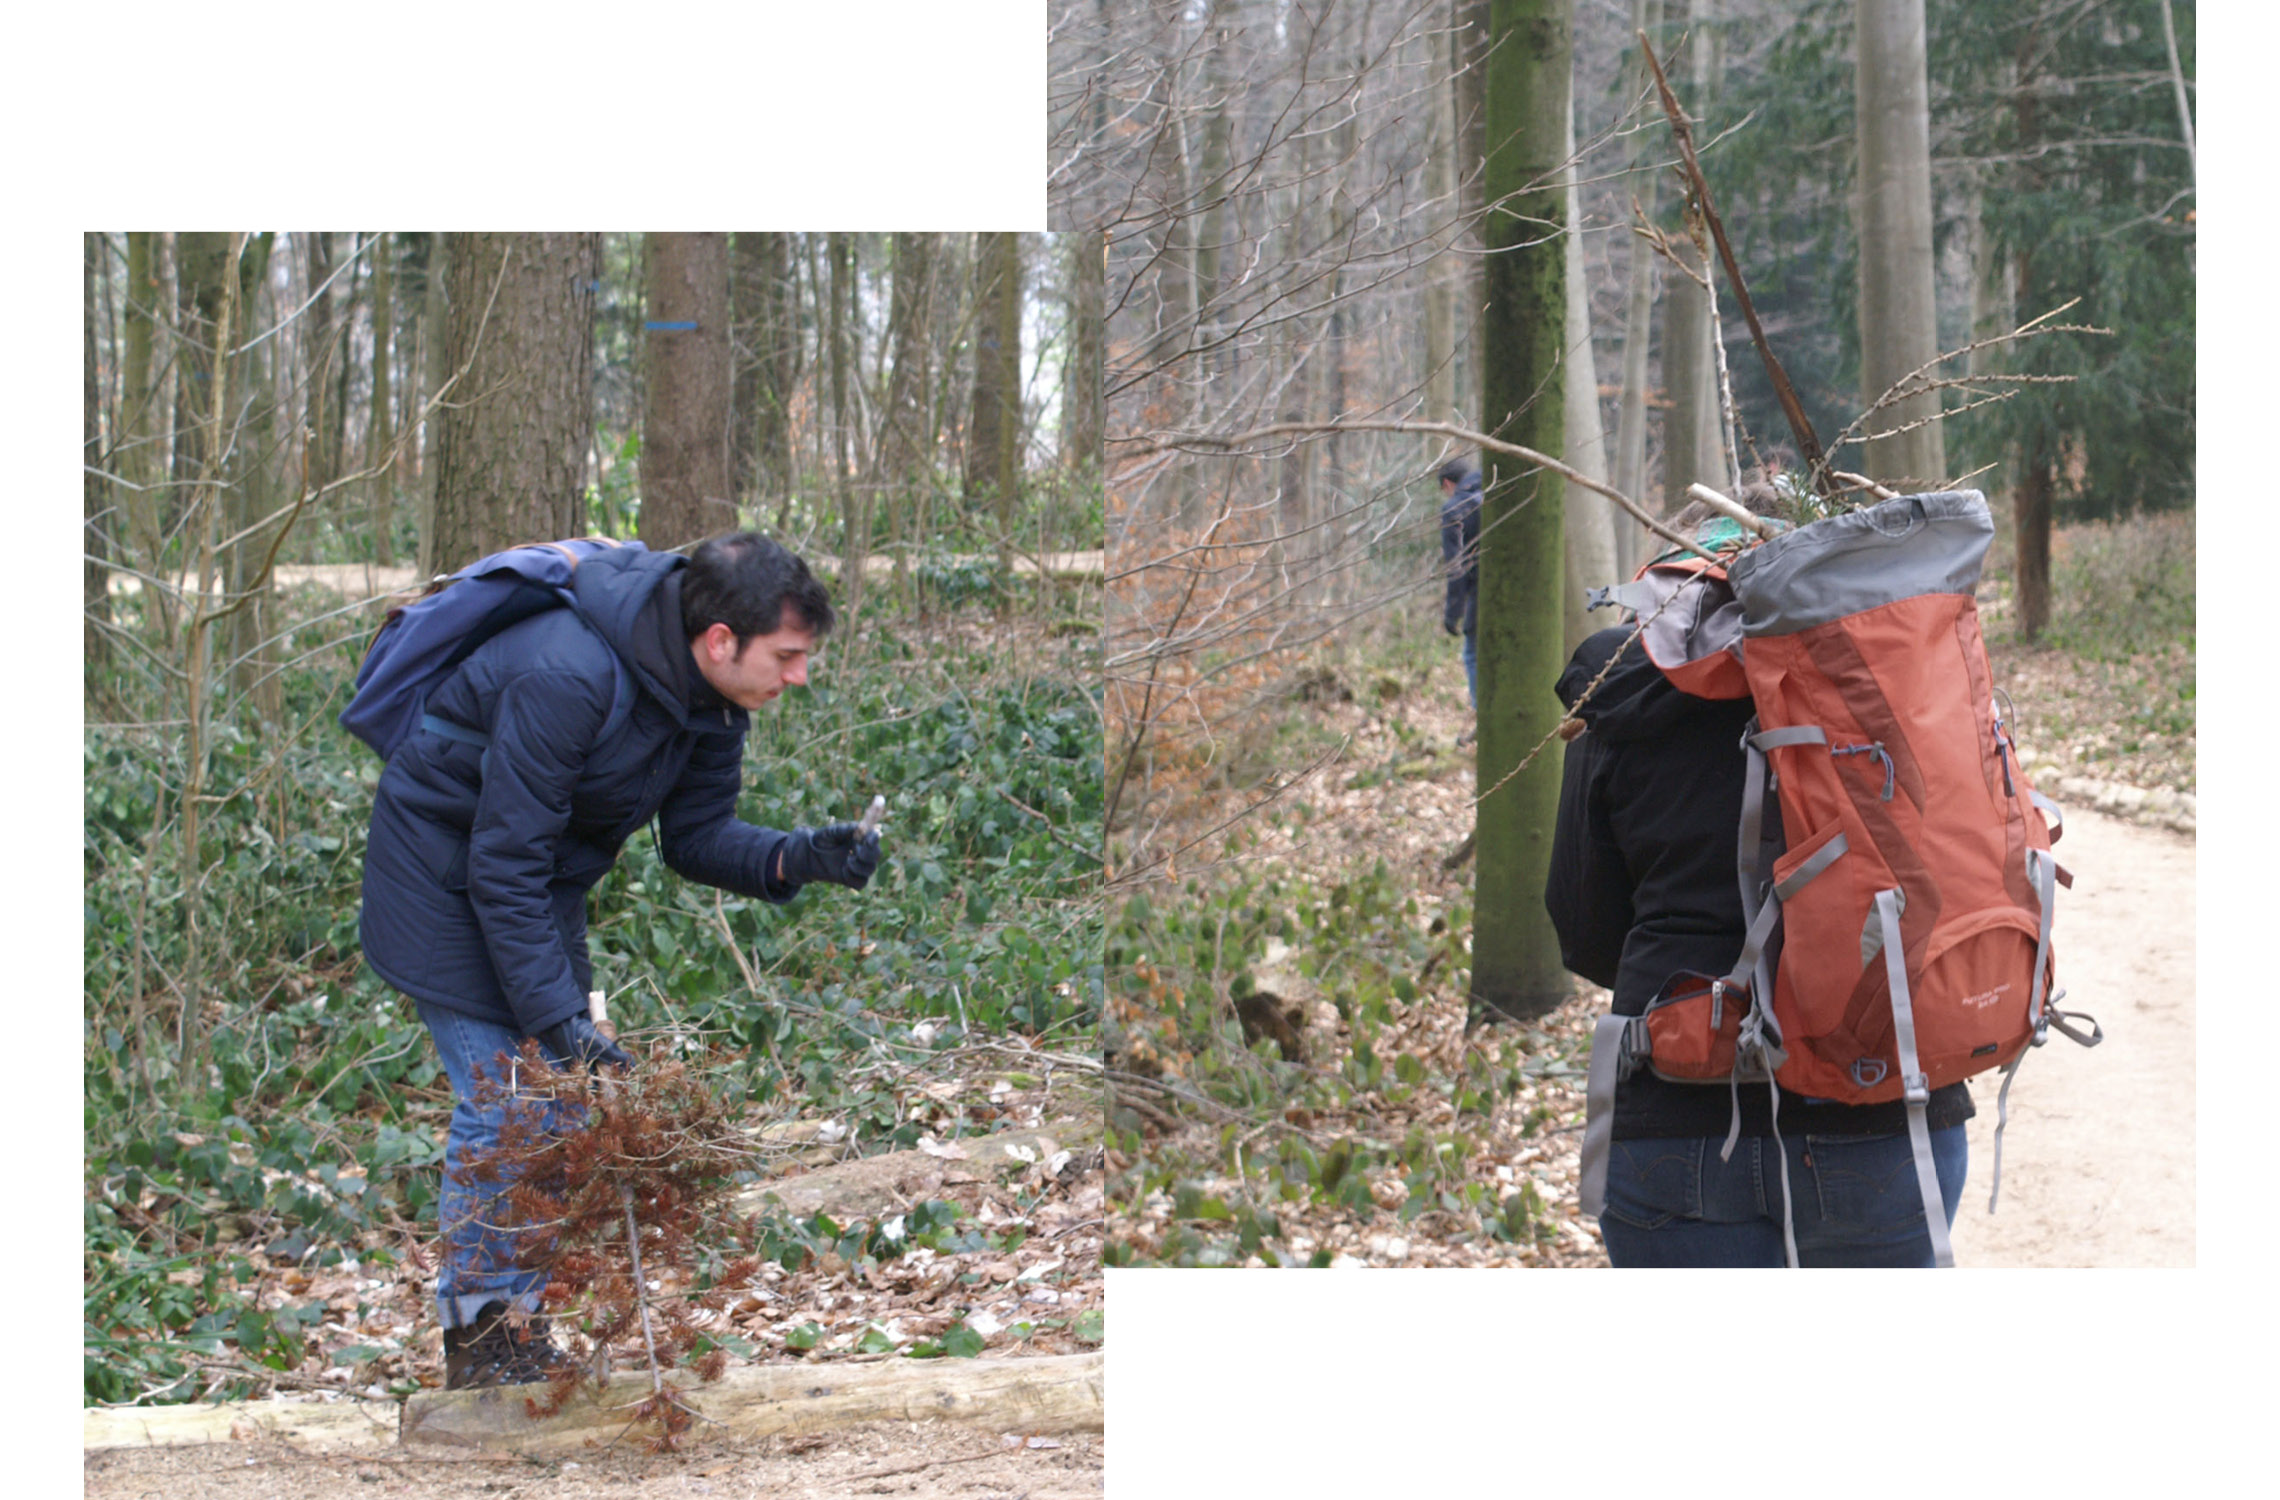 Participants collecting pieces of nature in the forest